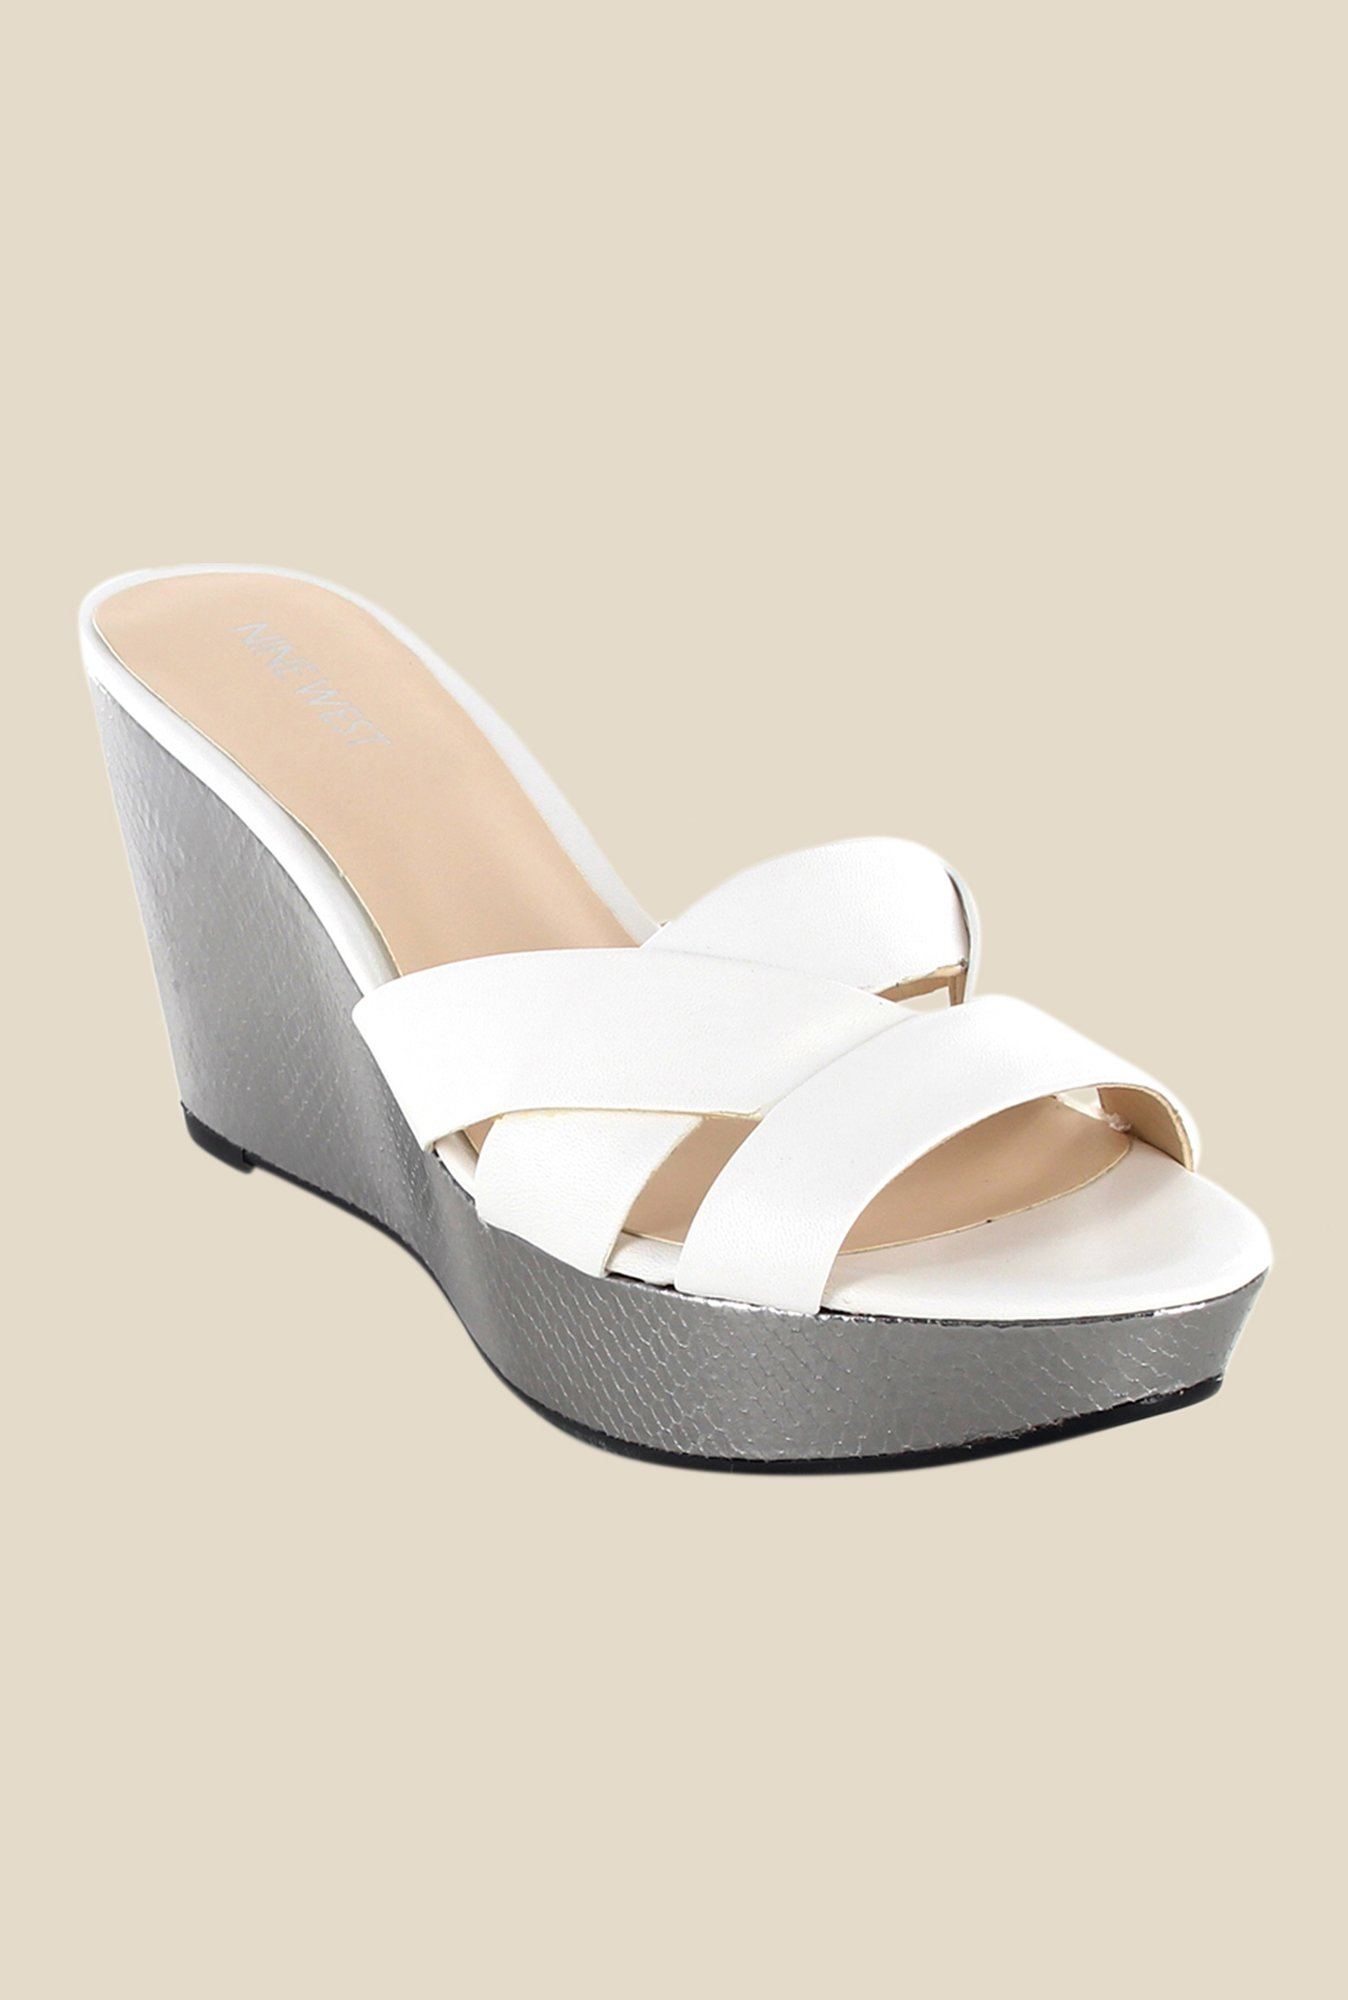 Nine West White Wedge Heeled Sandals